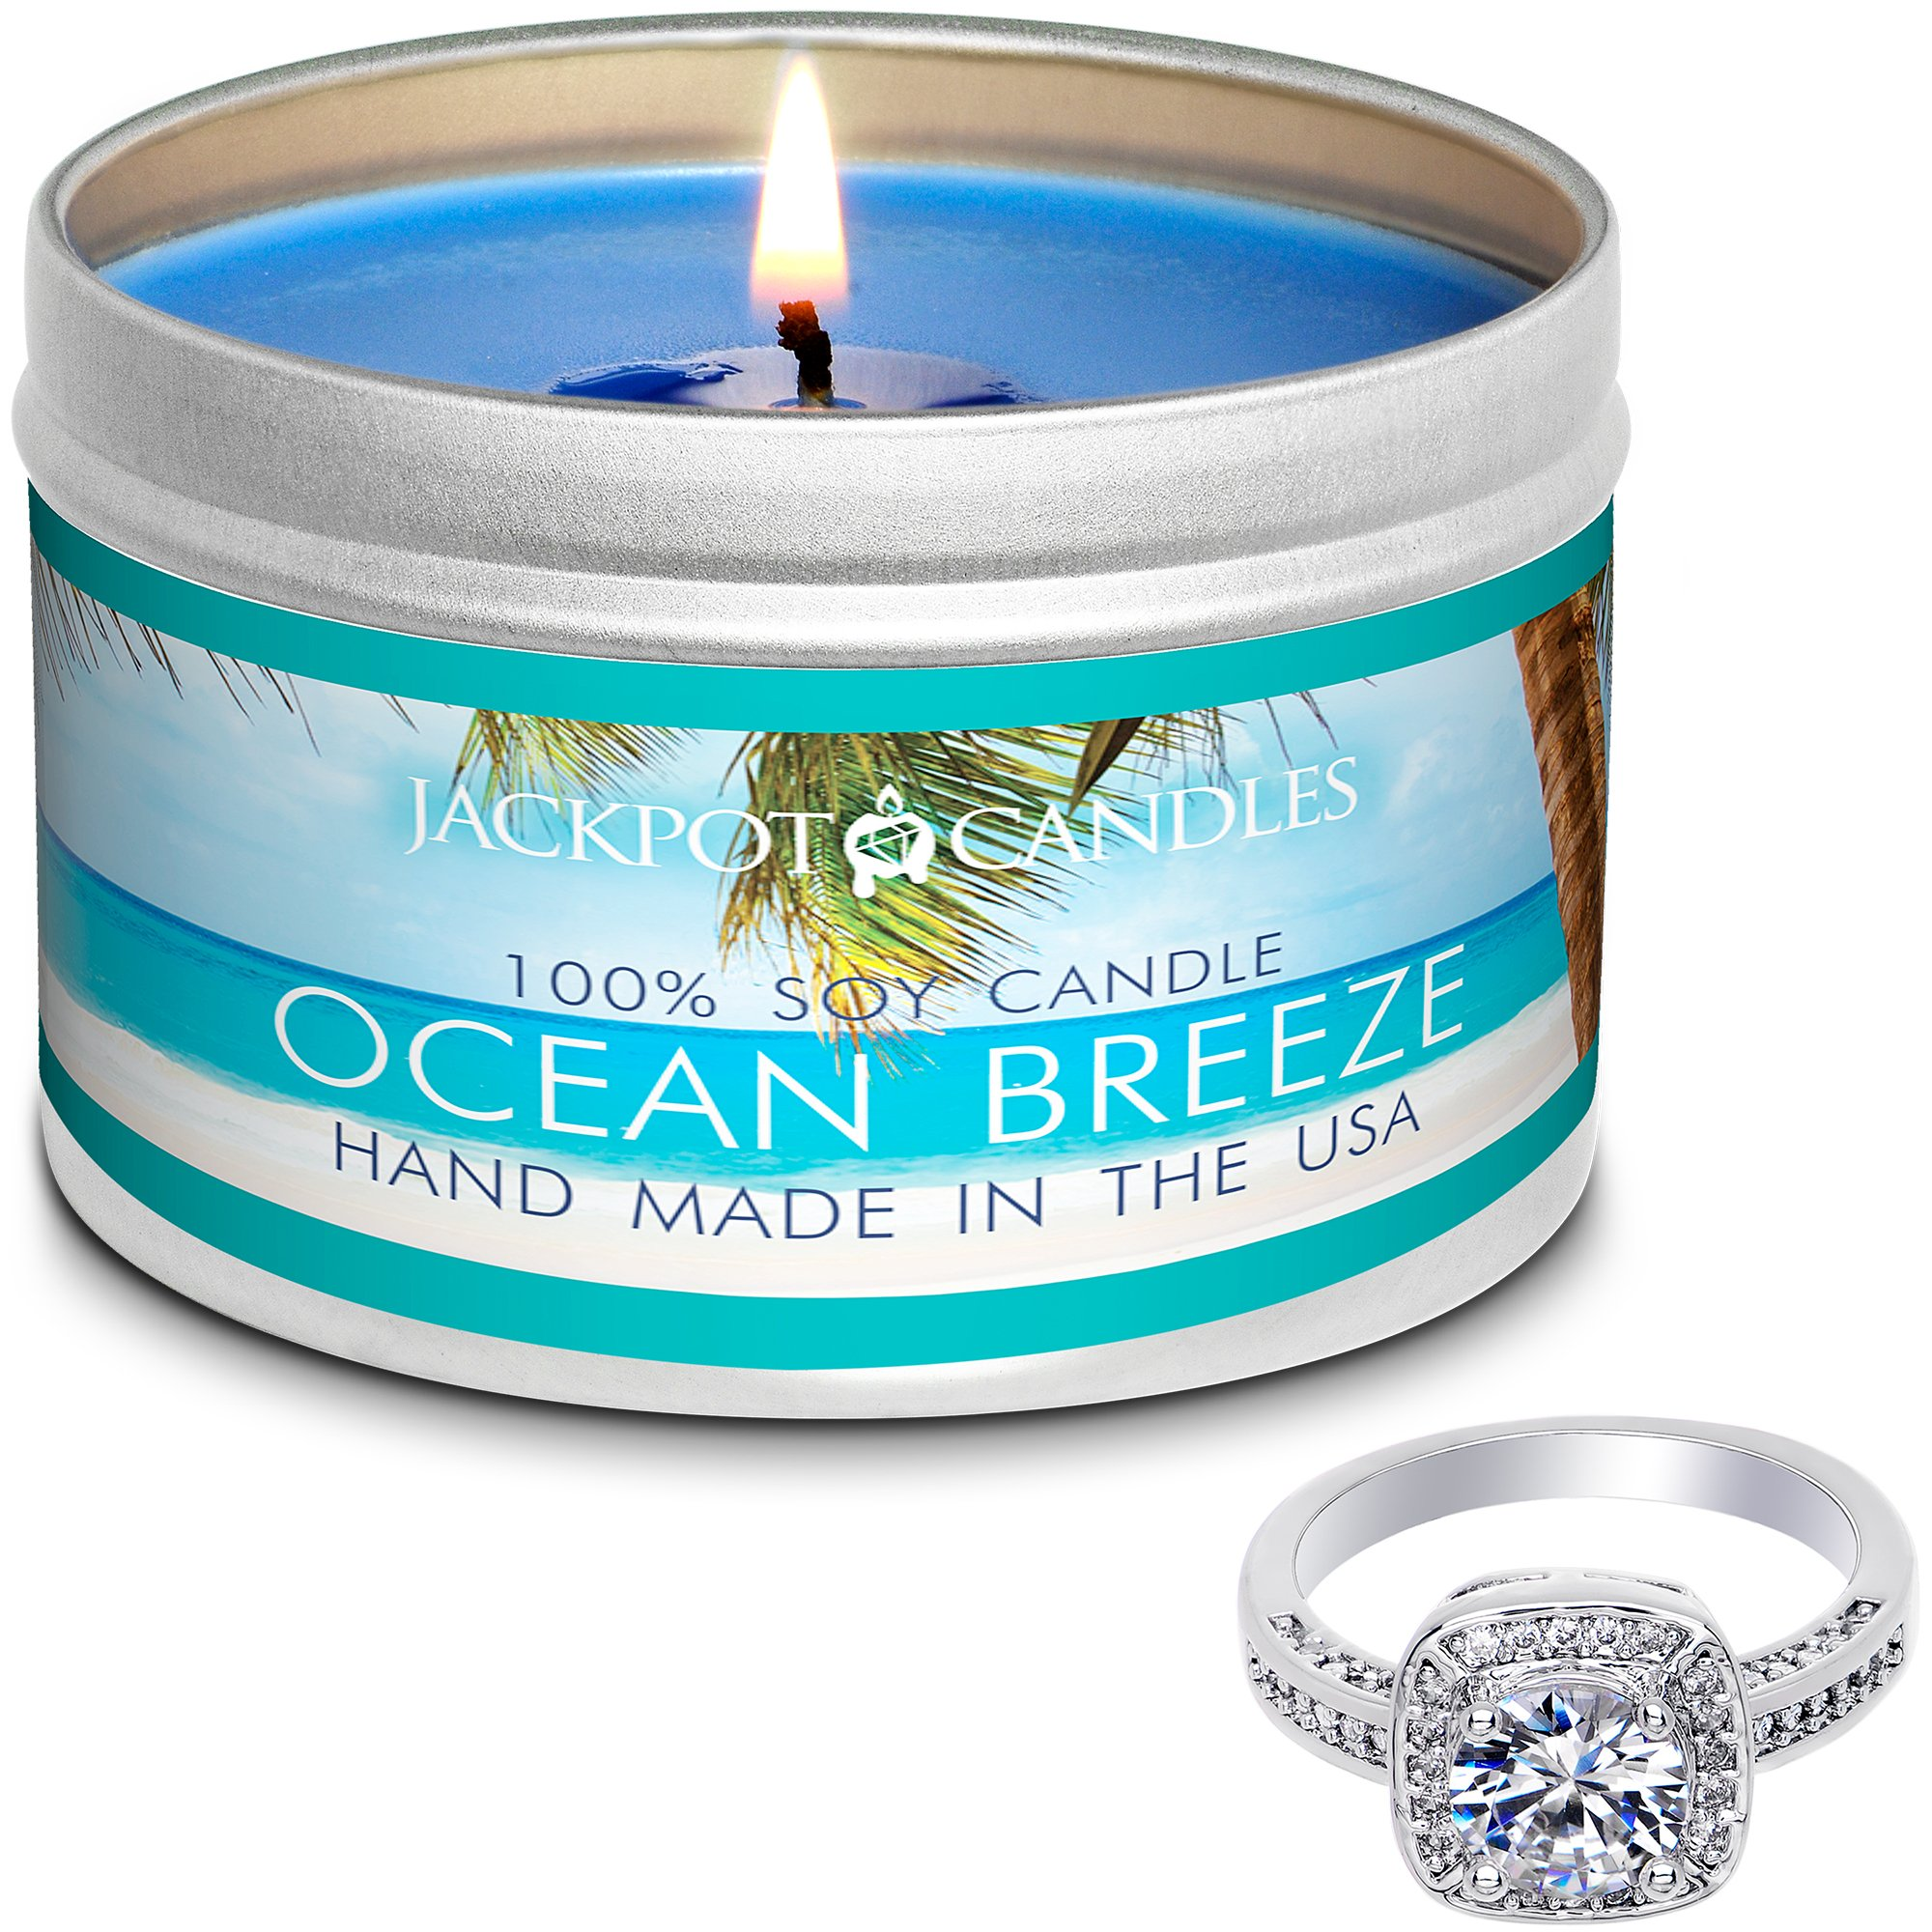 Jackpot Candles Surprise Size Ring Ocean Breeze Jewelry Candle Travel Tin